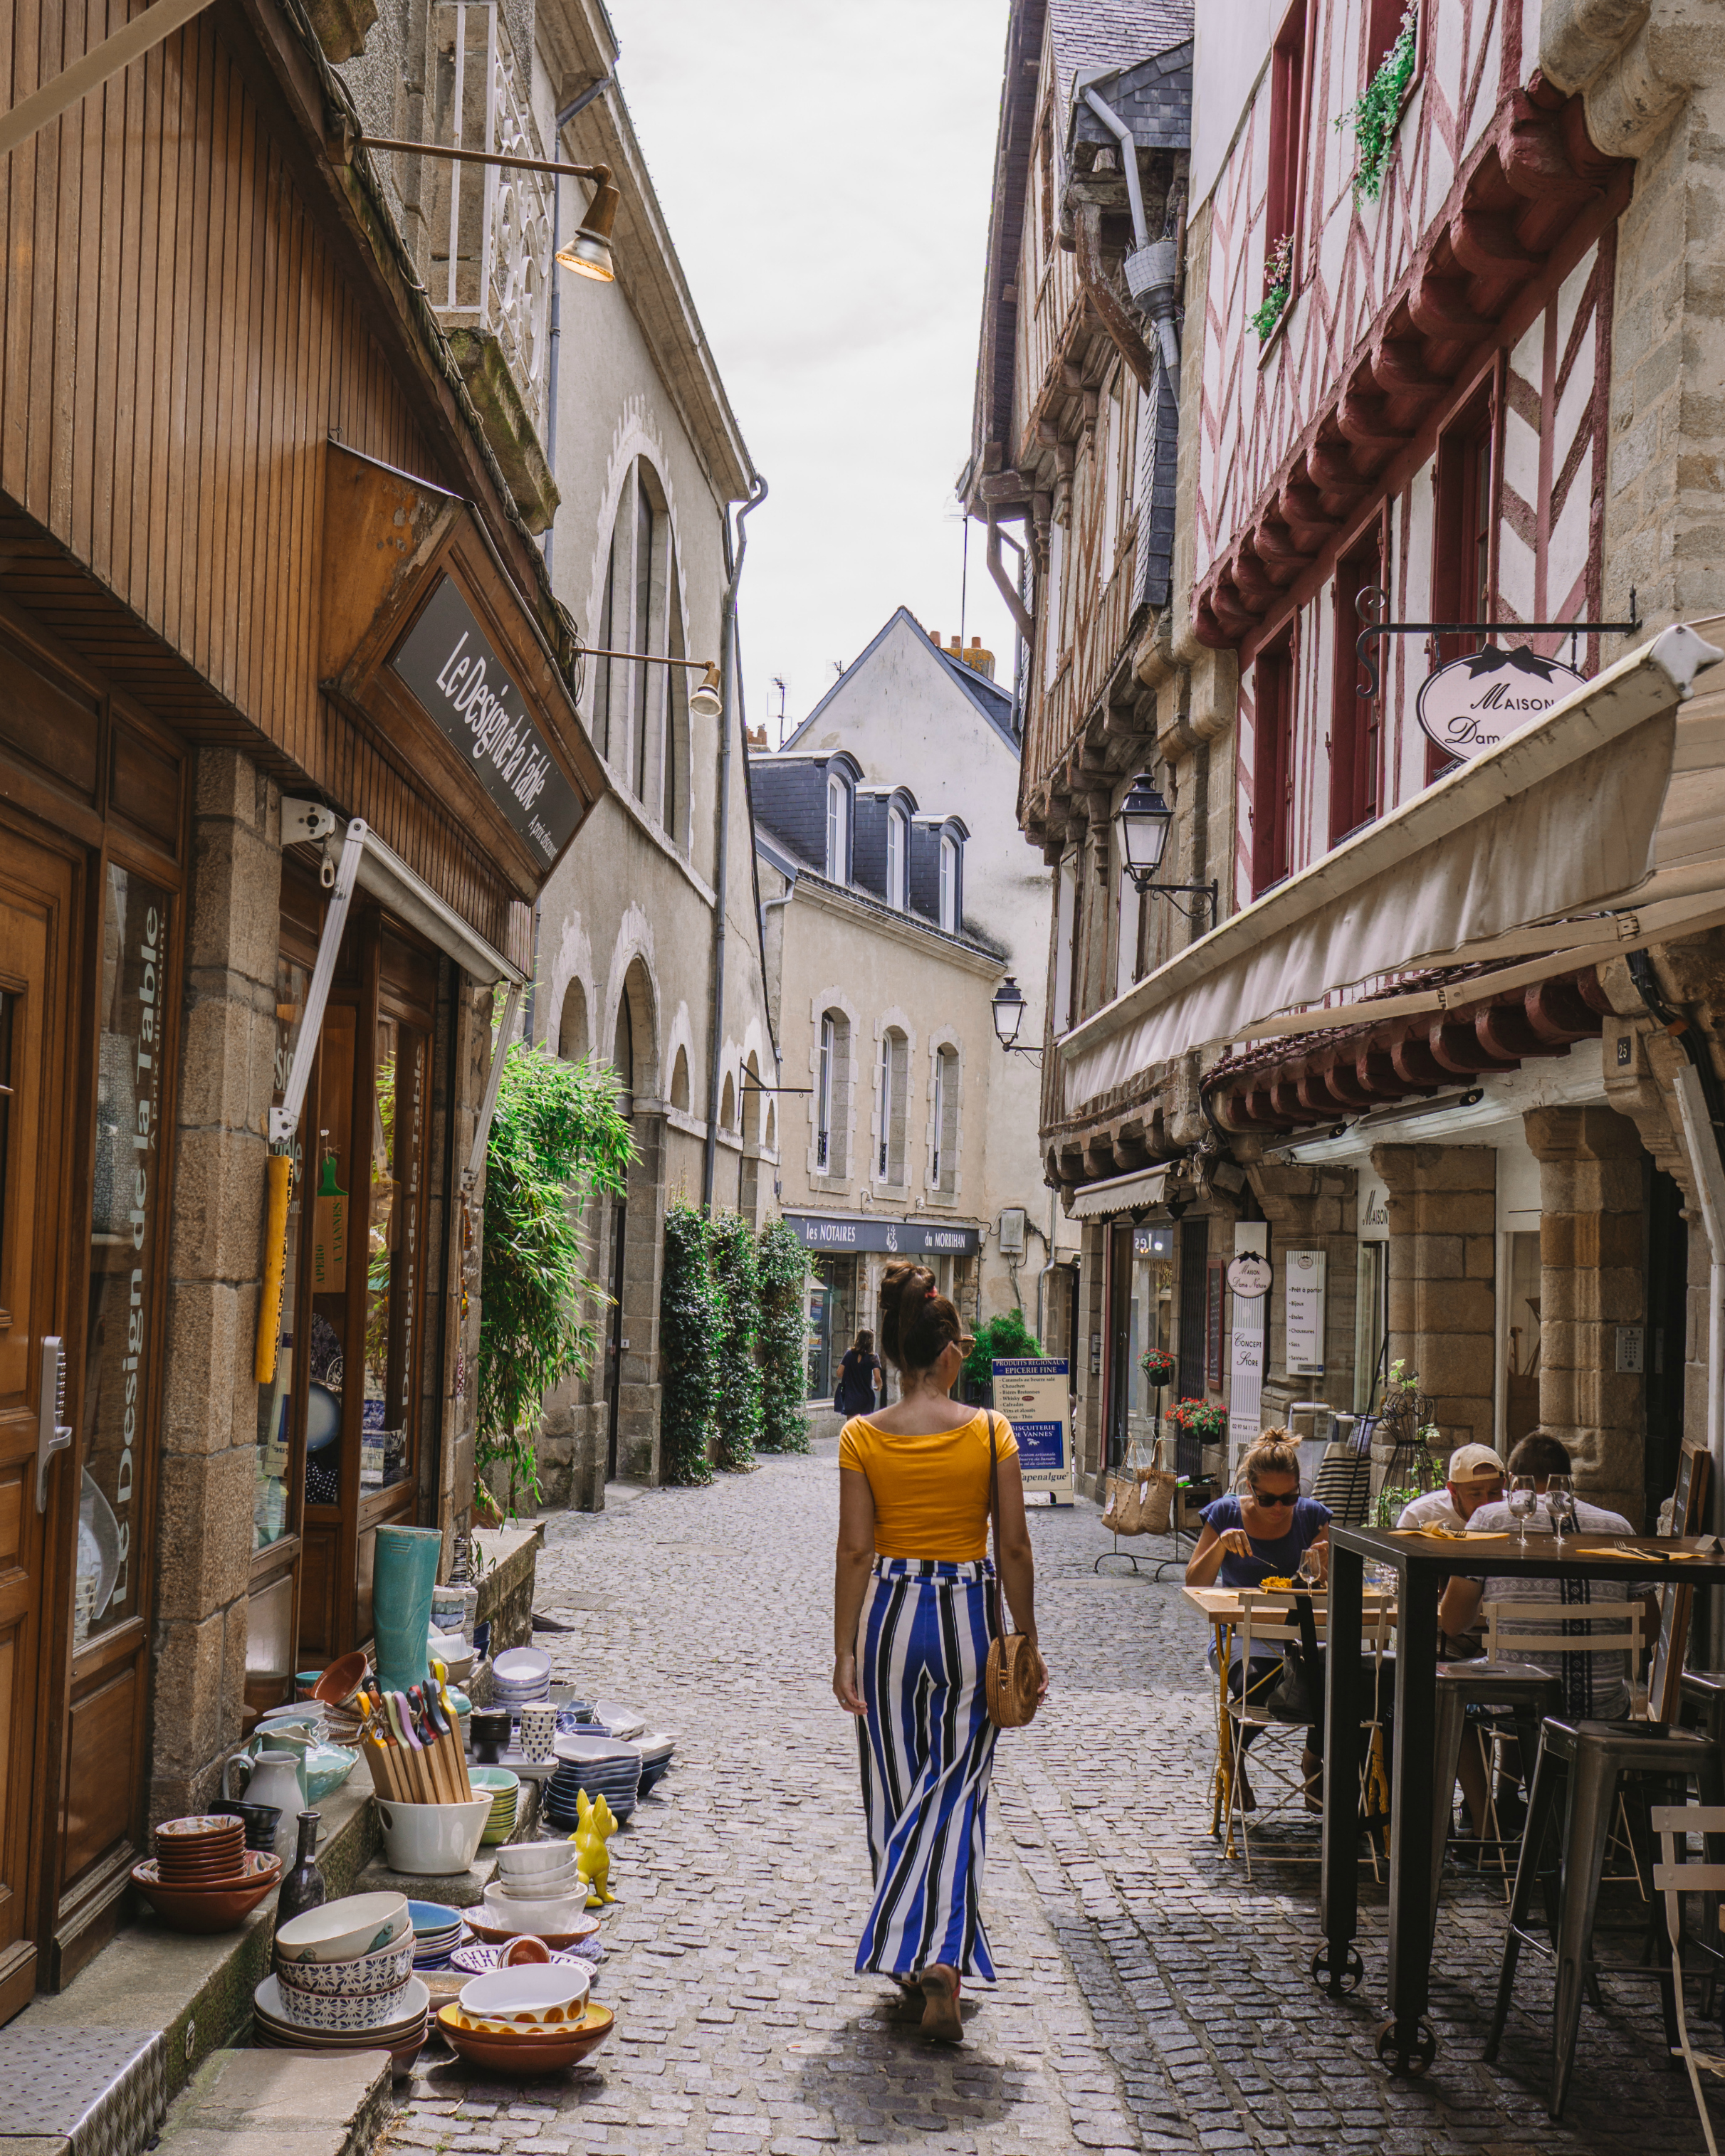 Walking through the ancient streets of Vannes, Brittany, France